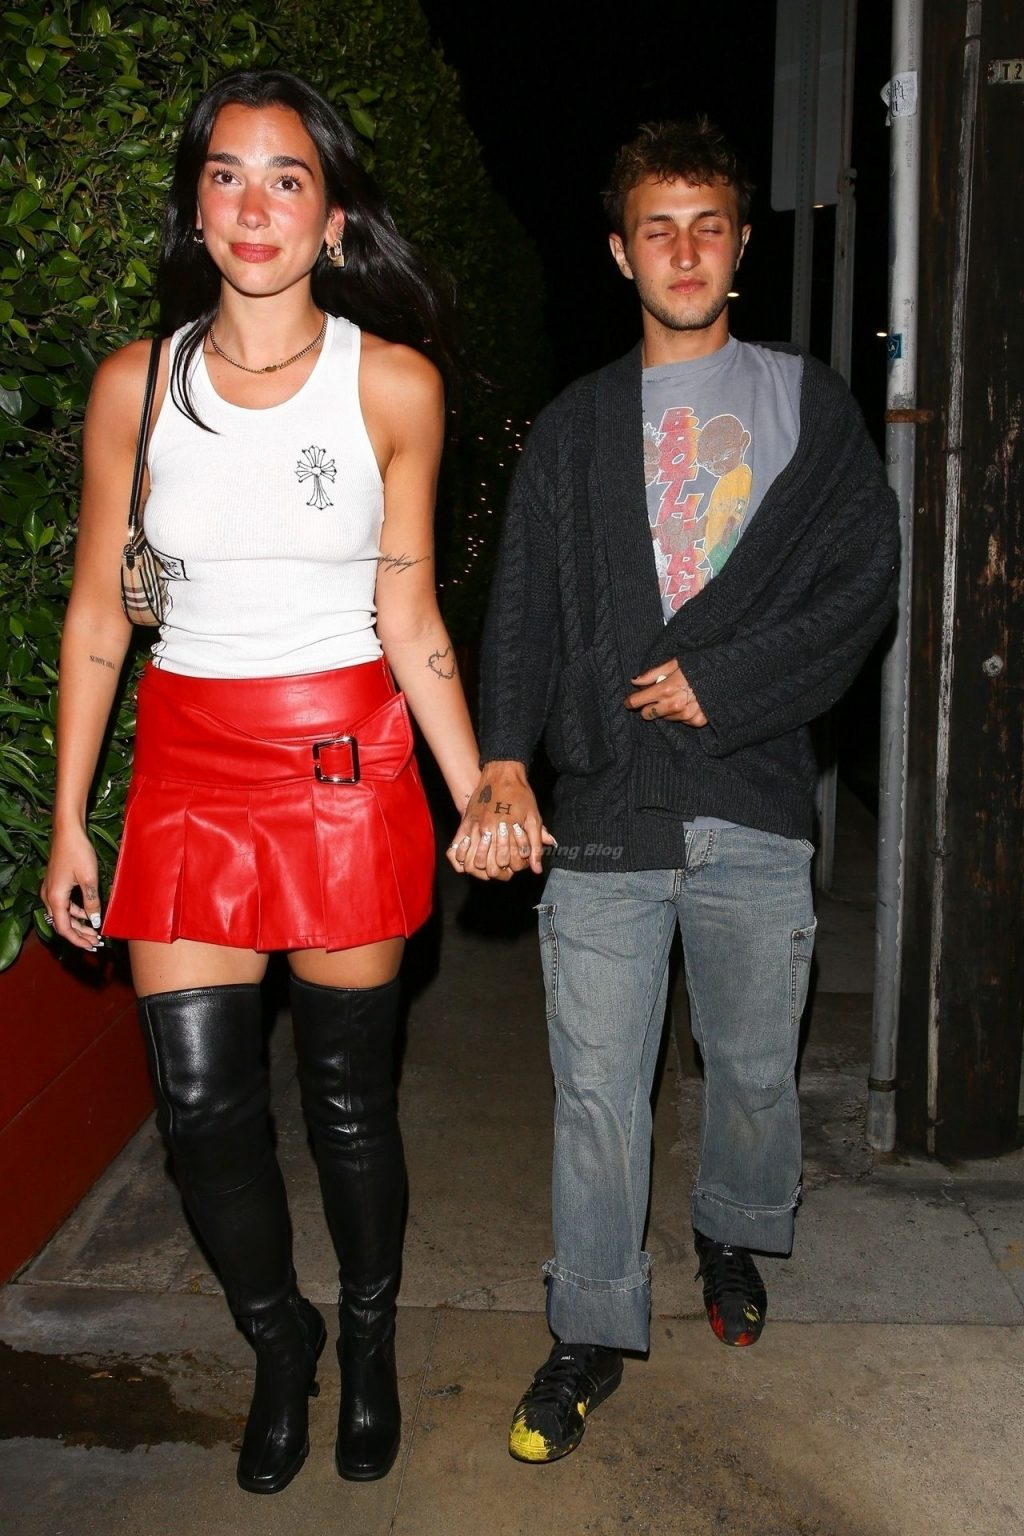 Dua Lipa and Anwar Hadid are Spotted Leaving a Dinner Date in Santa Monica (41 Photos)